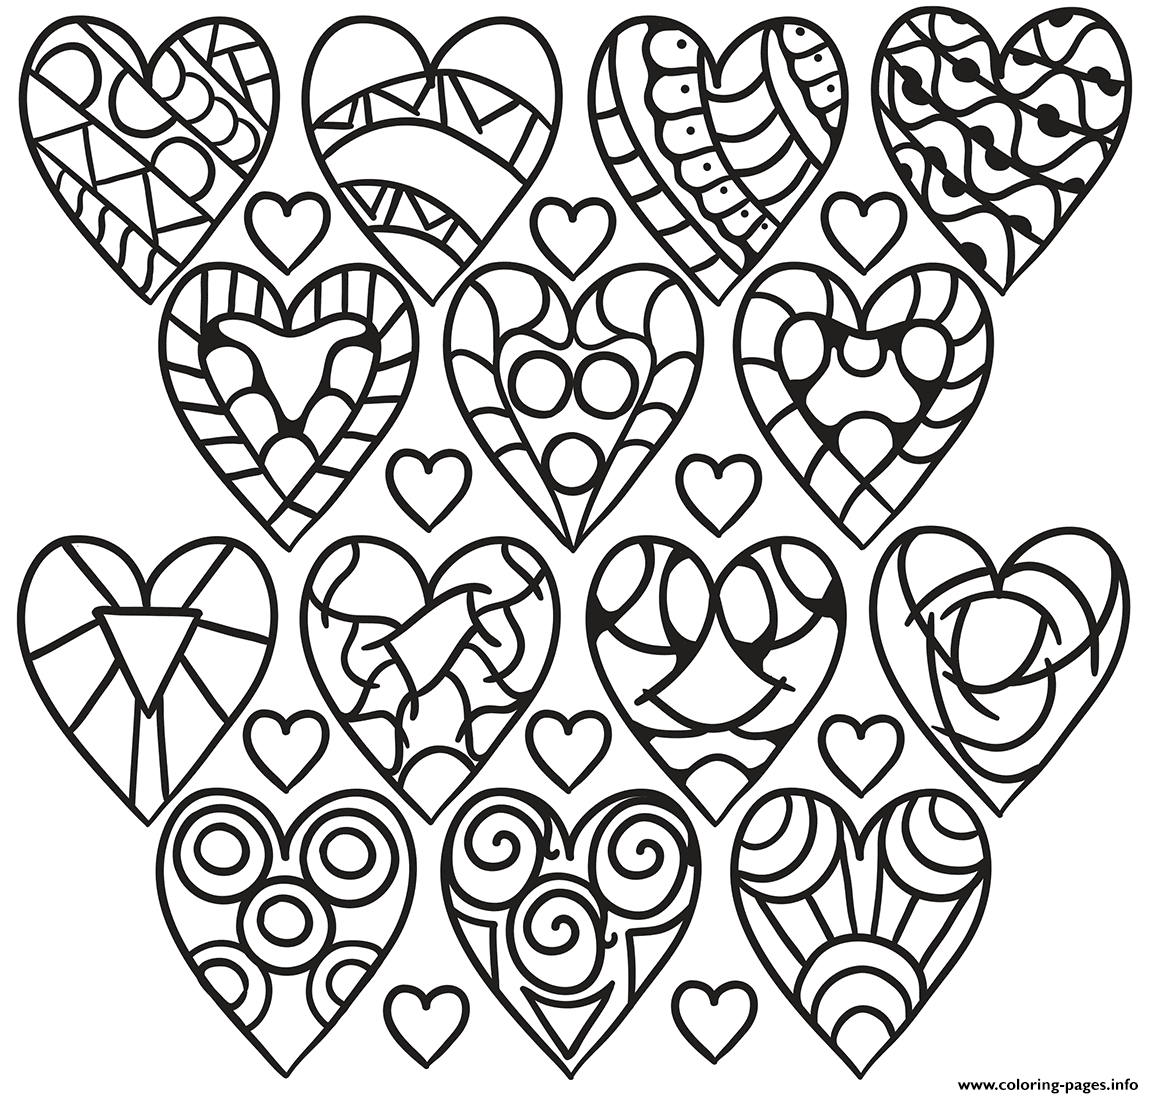 Hearts Pattern coloring pages